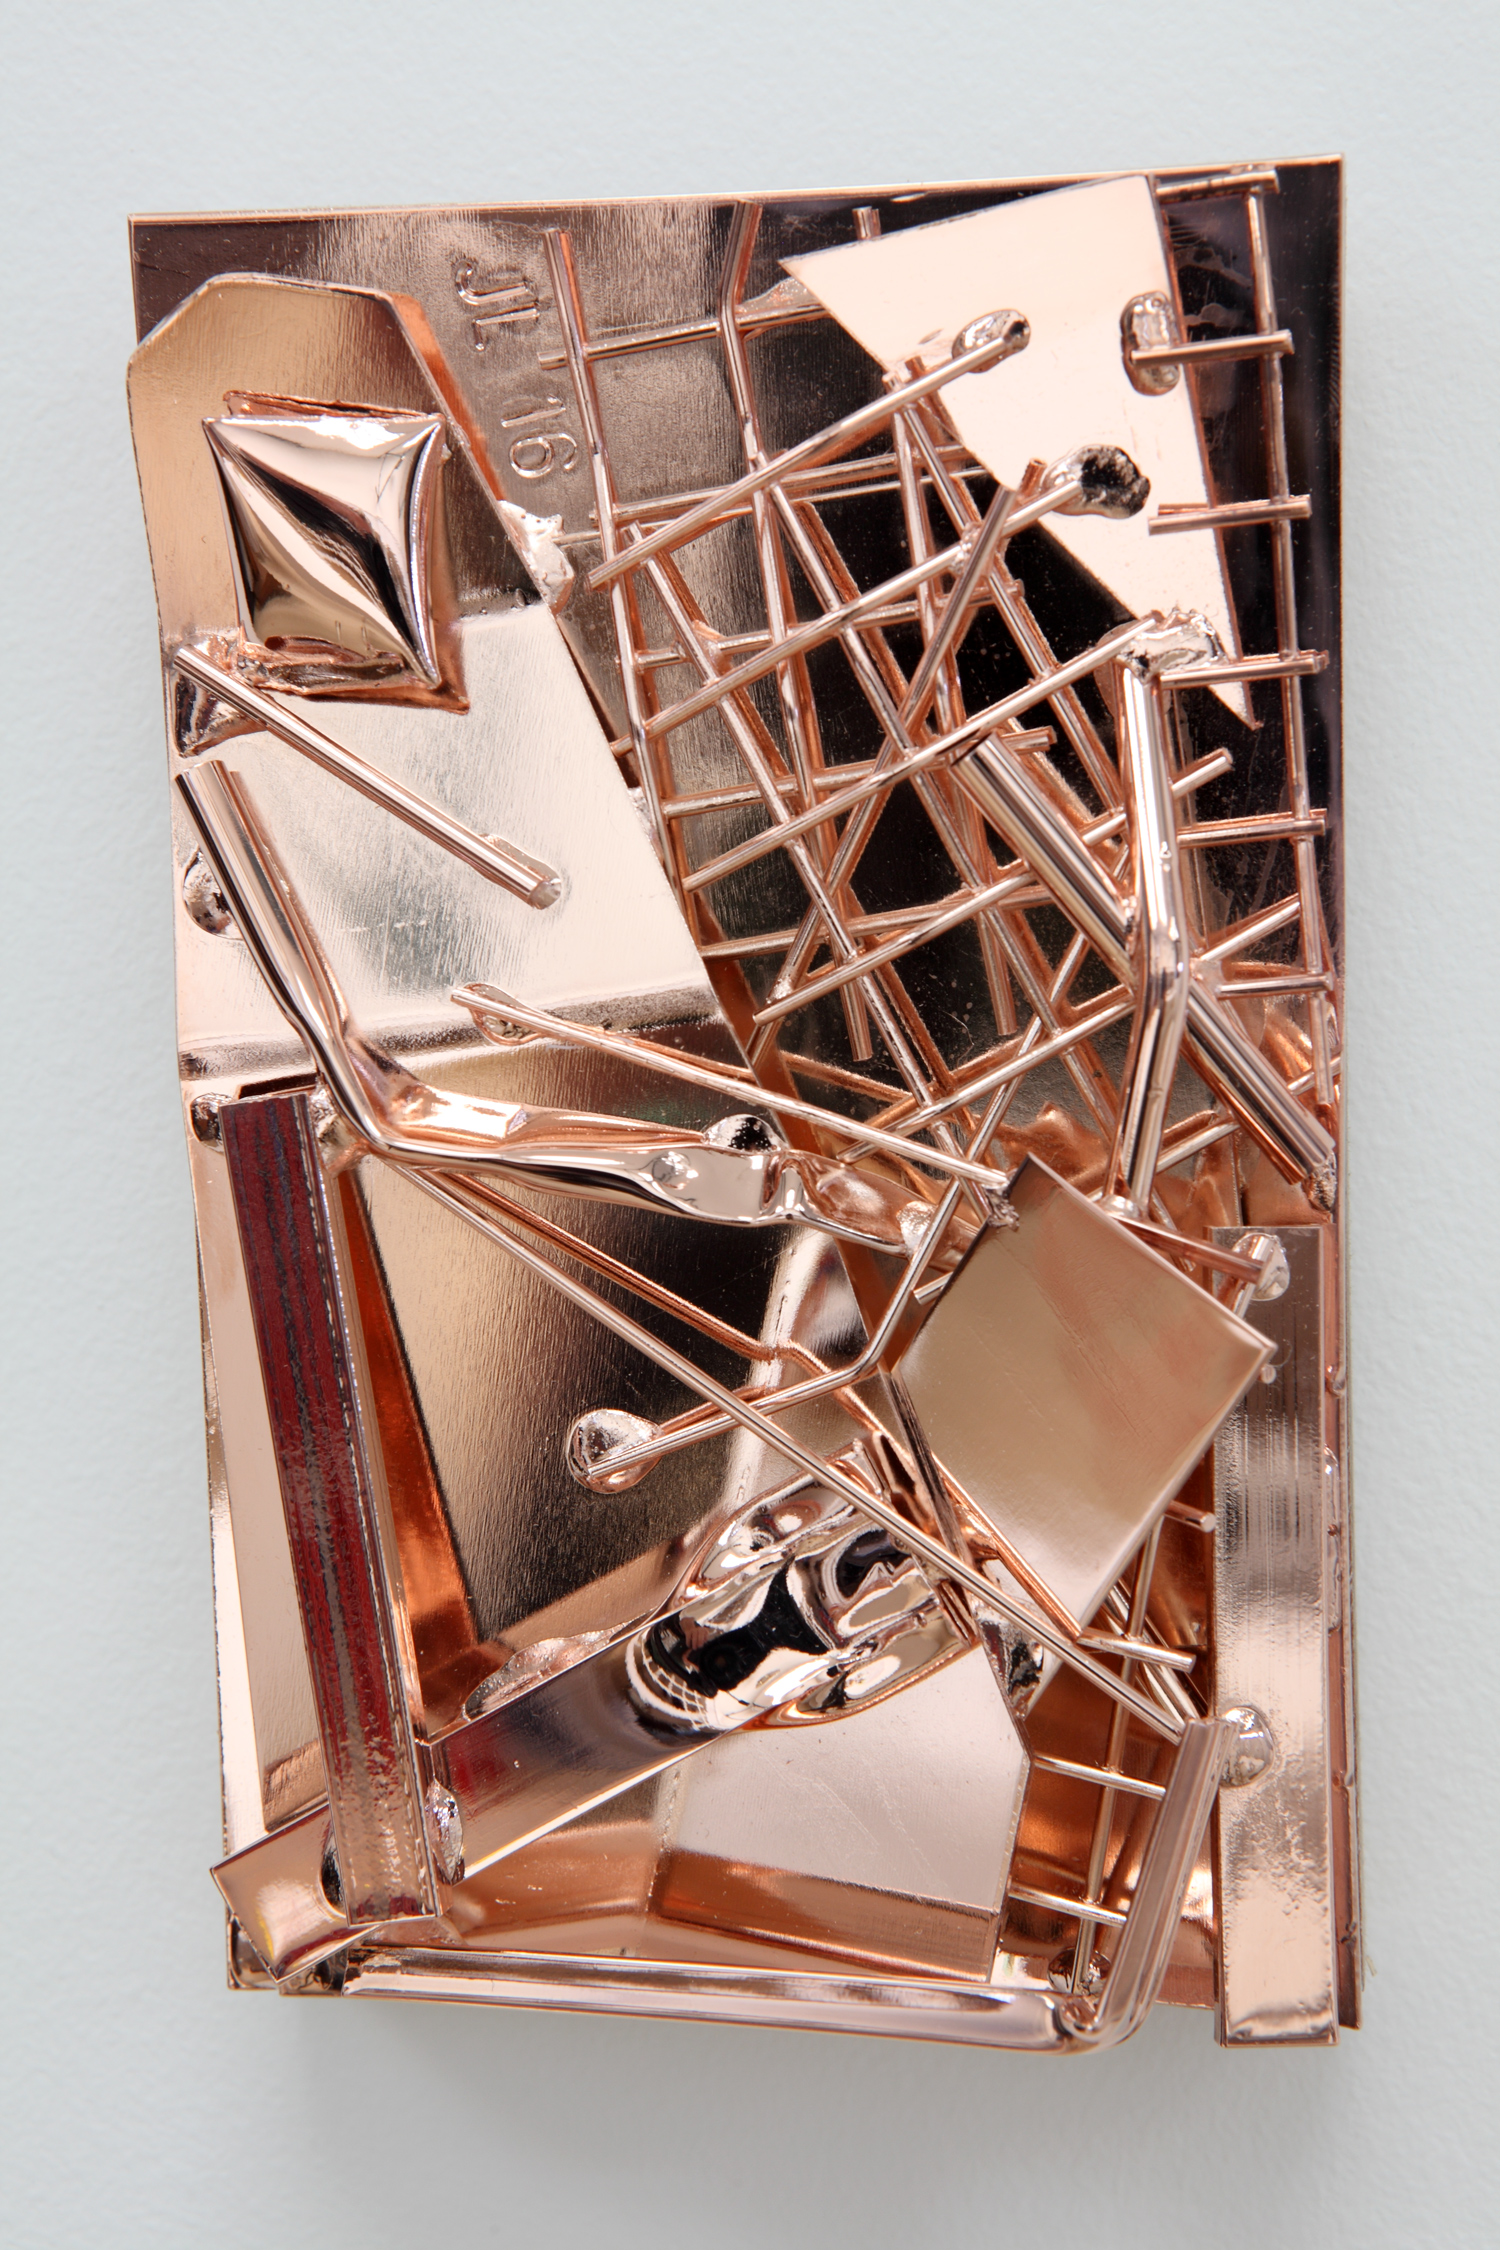 Self Portrait and Studio, 2016, rose gold coated steel, 15 x 10cm